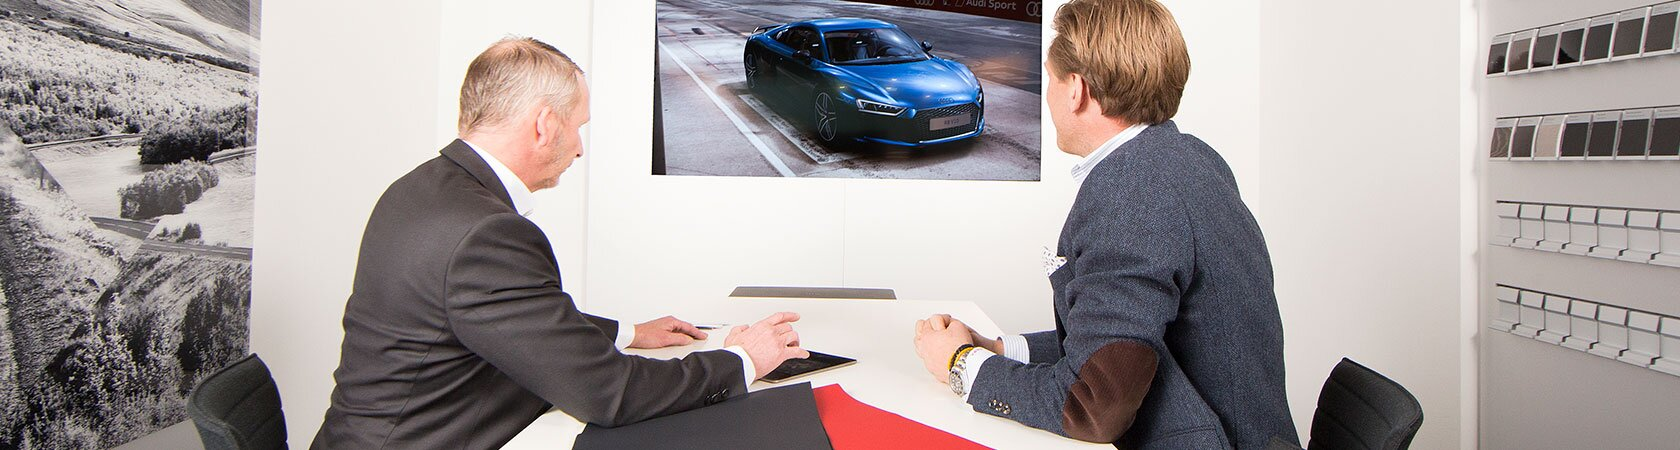 Selger og kunde i Customer private lounge Audi